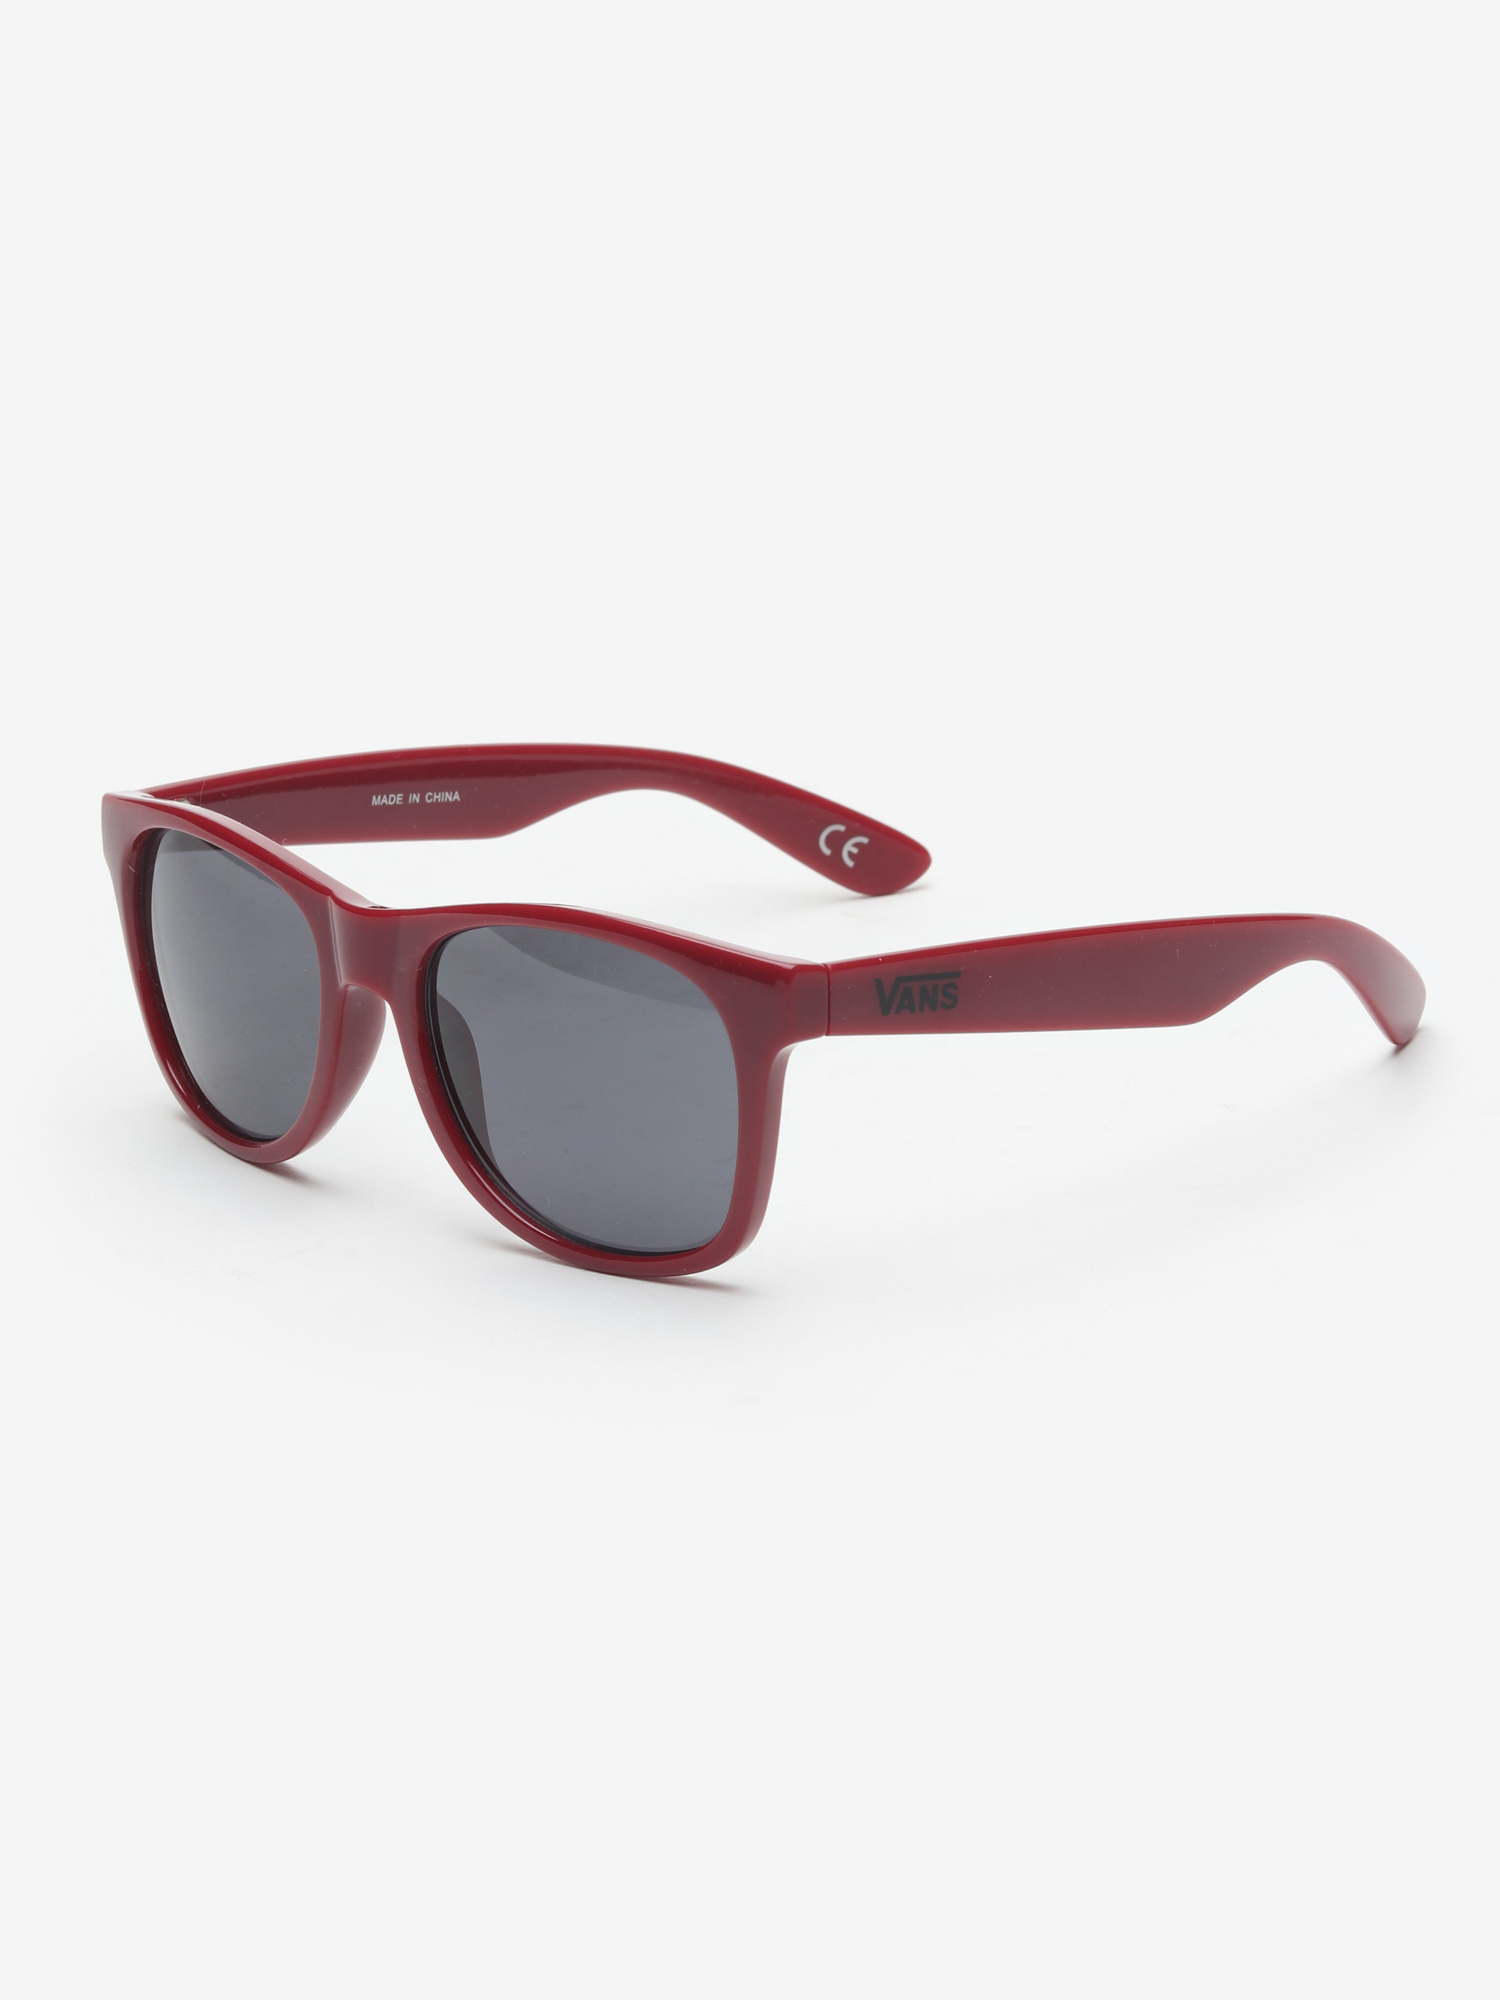 Okuliare Vans Mn Spicoli 4 Shades Biking Red (1)